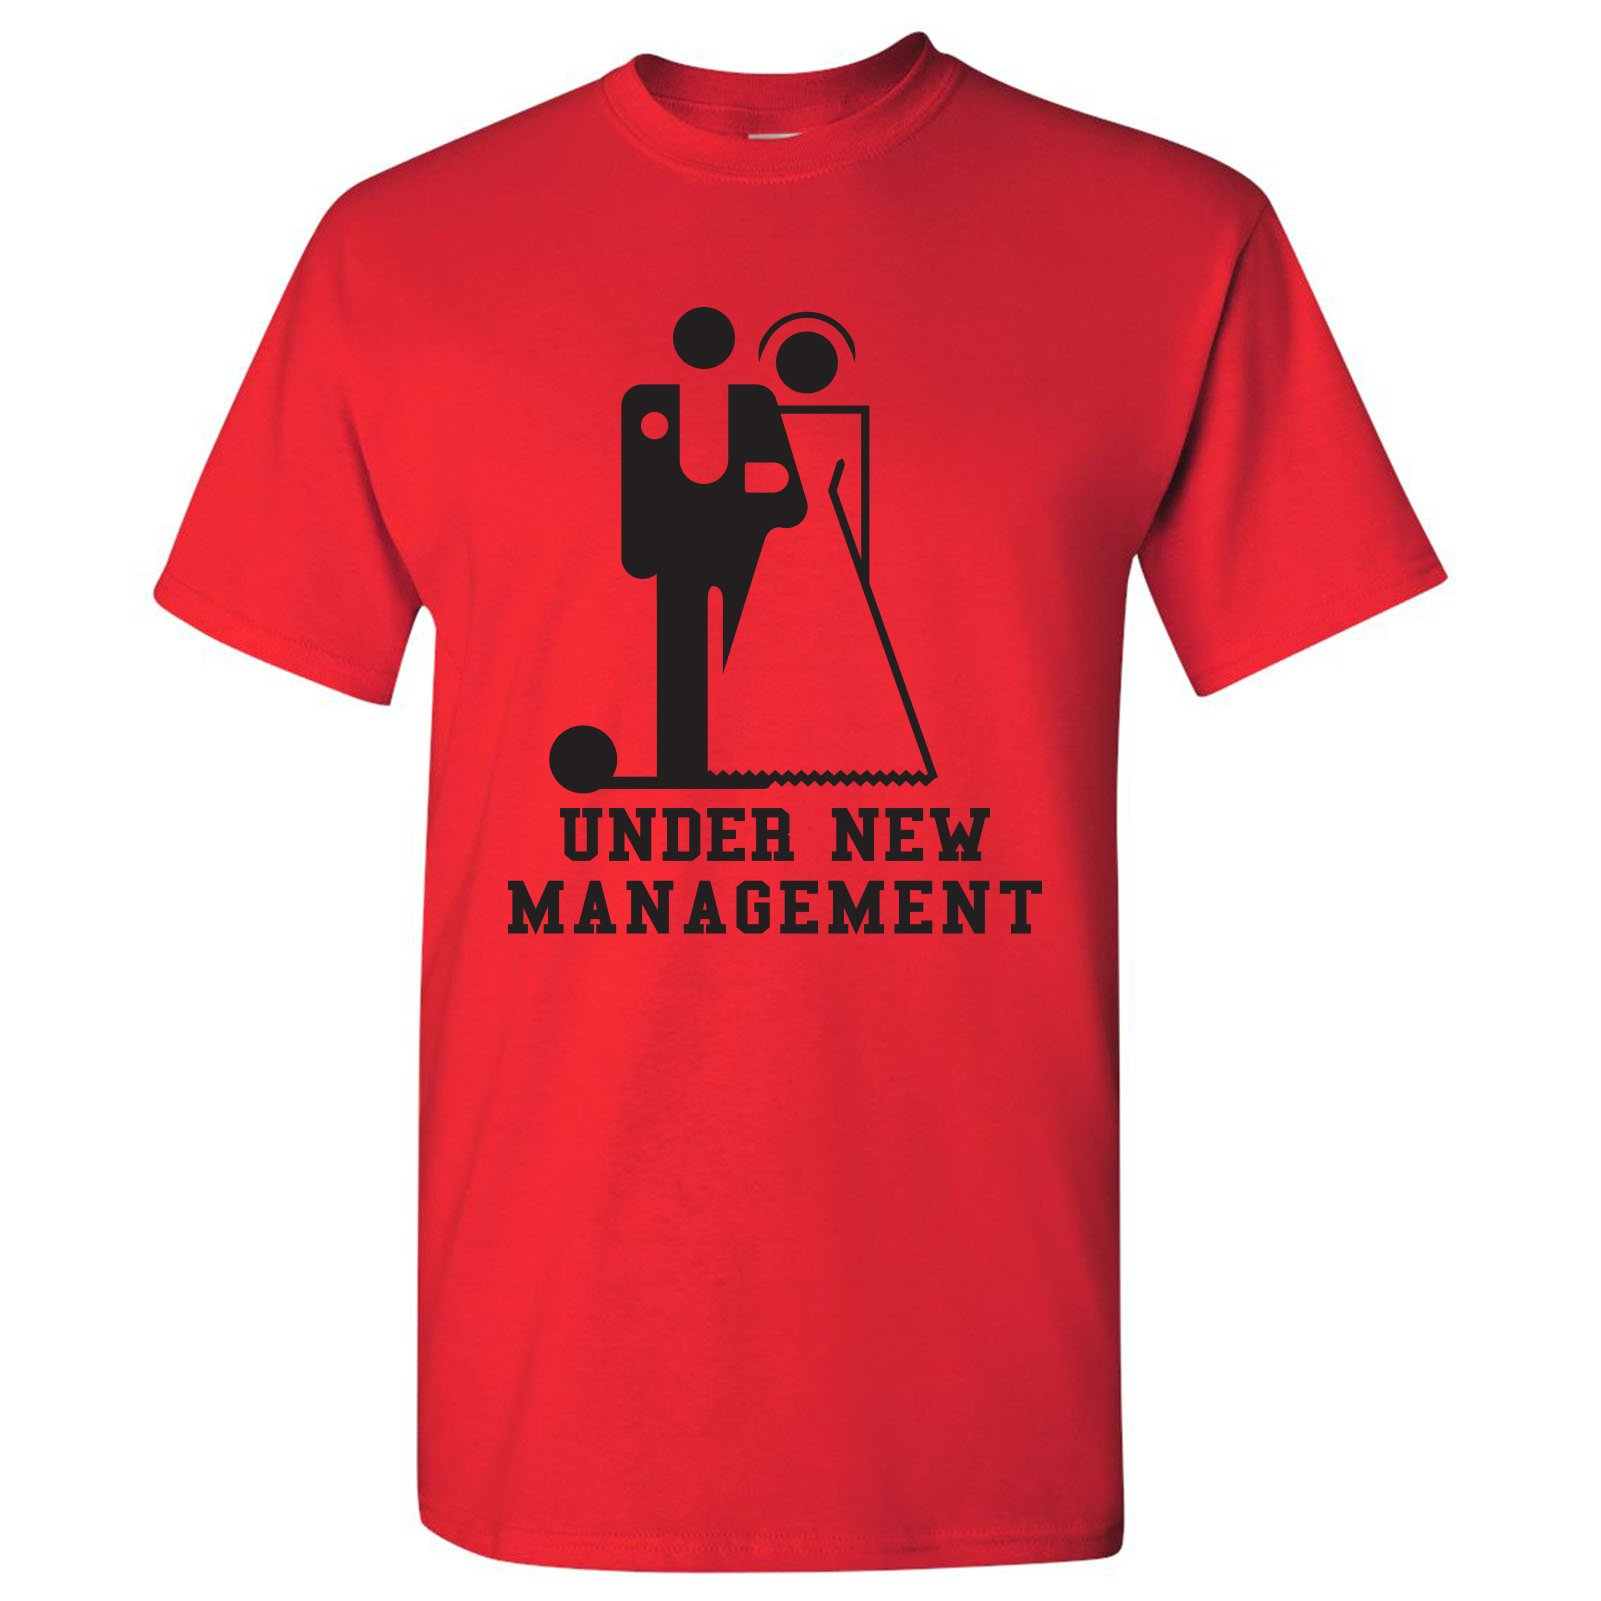 Under New Management - Marriage, Sarcastic, Husband, Wife, Wedding, Bachelor Party - Funny Adult Novelty Cotton T-Shirt - Large - Red